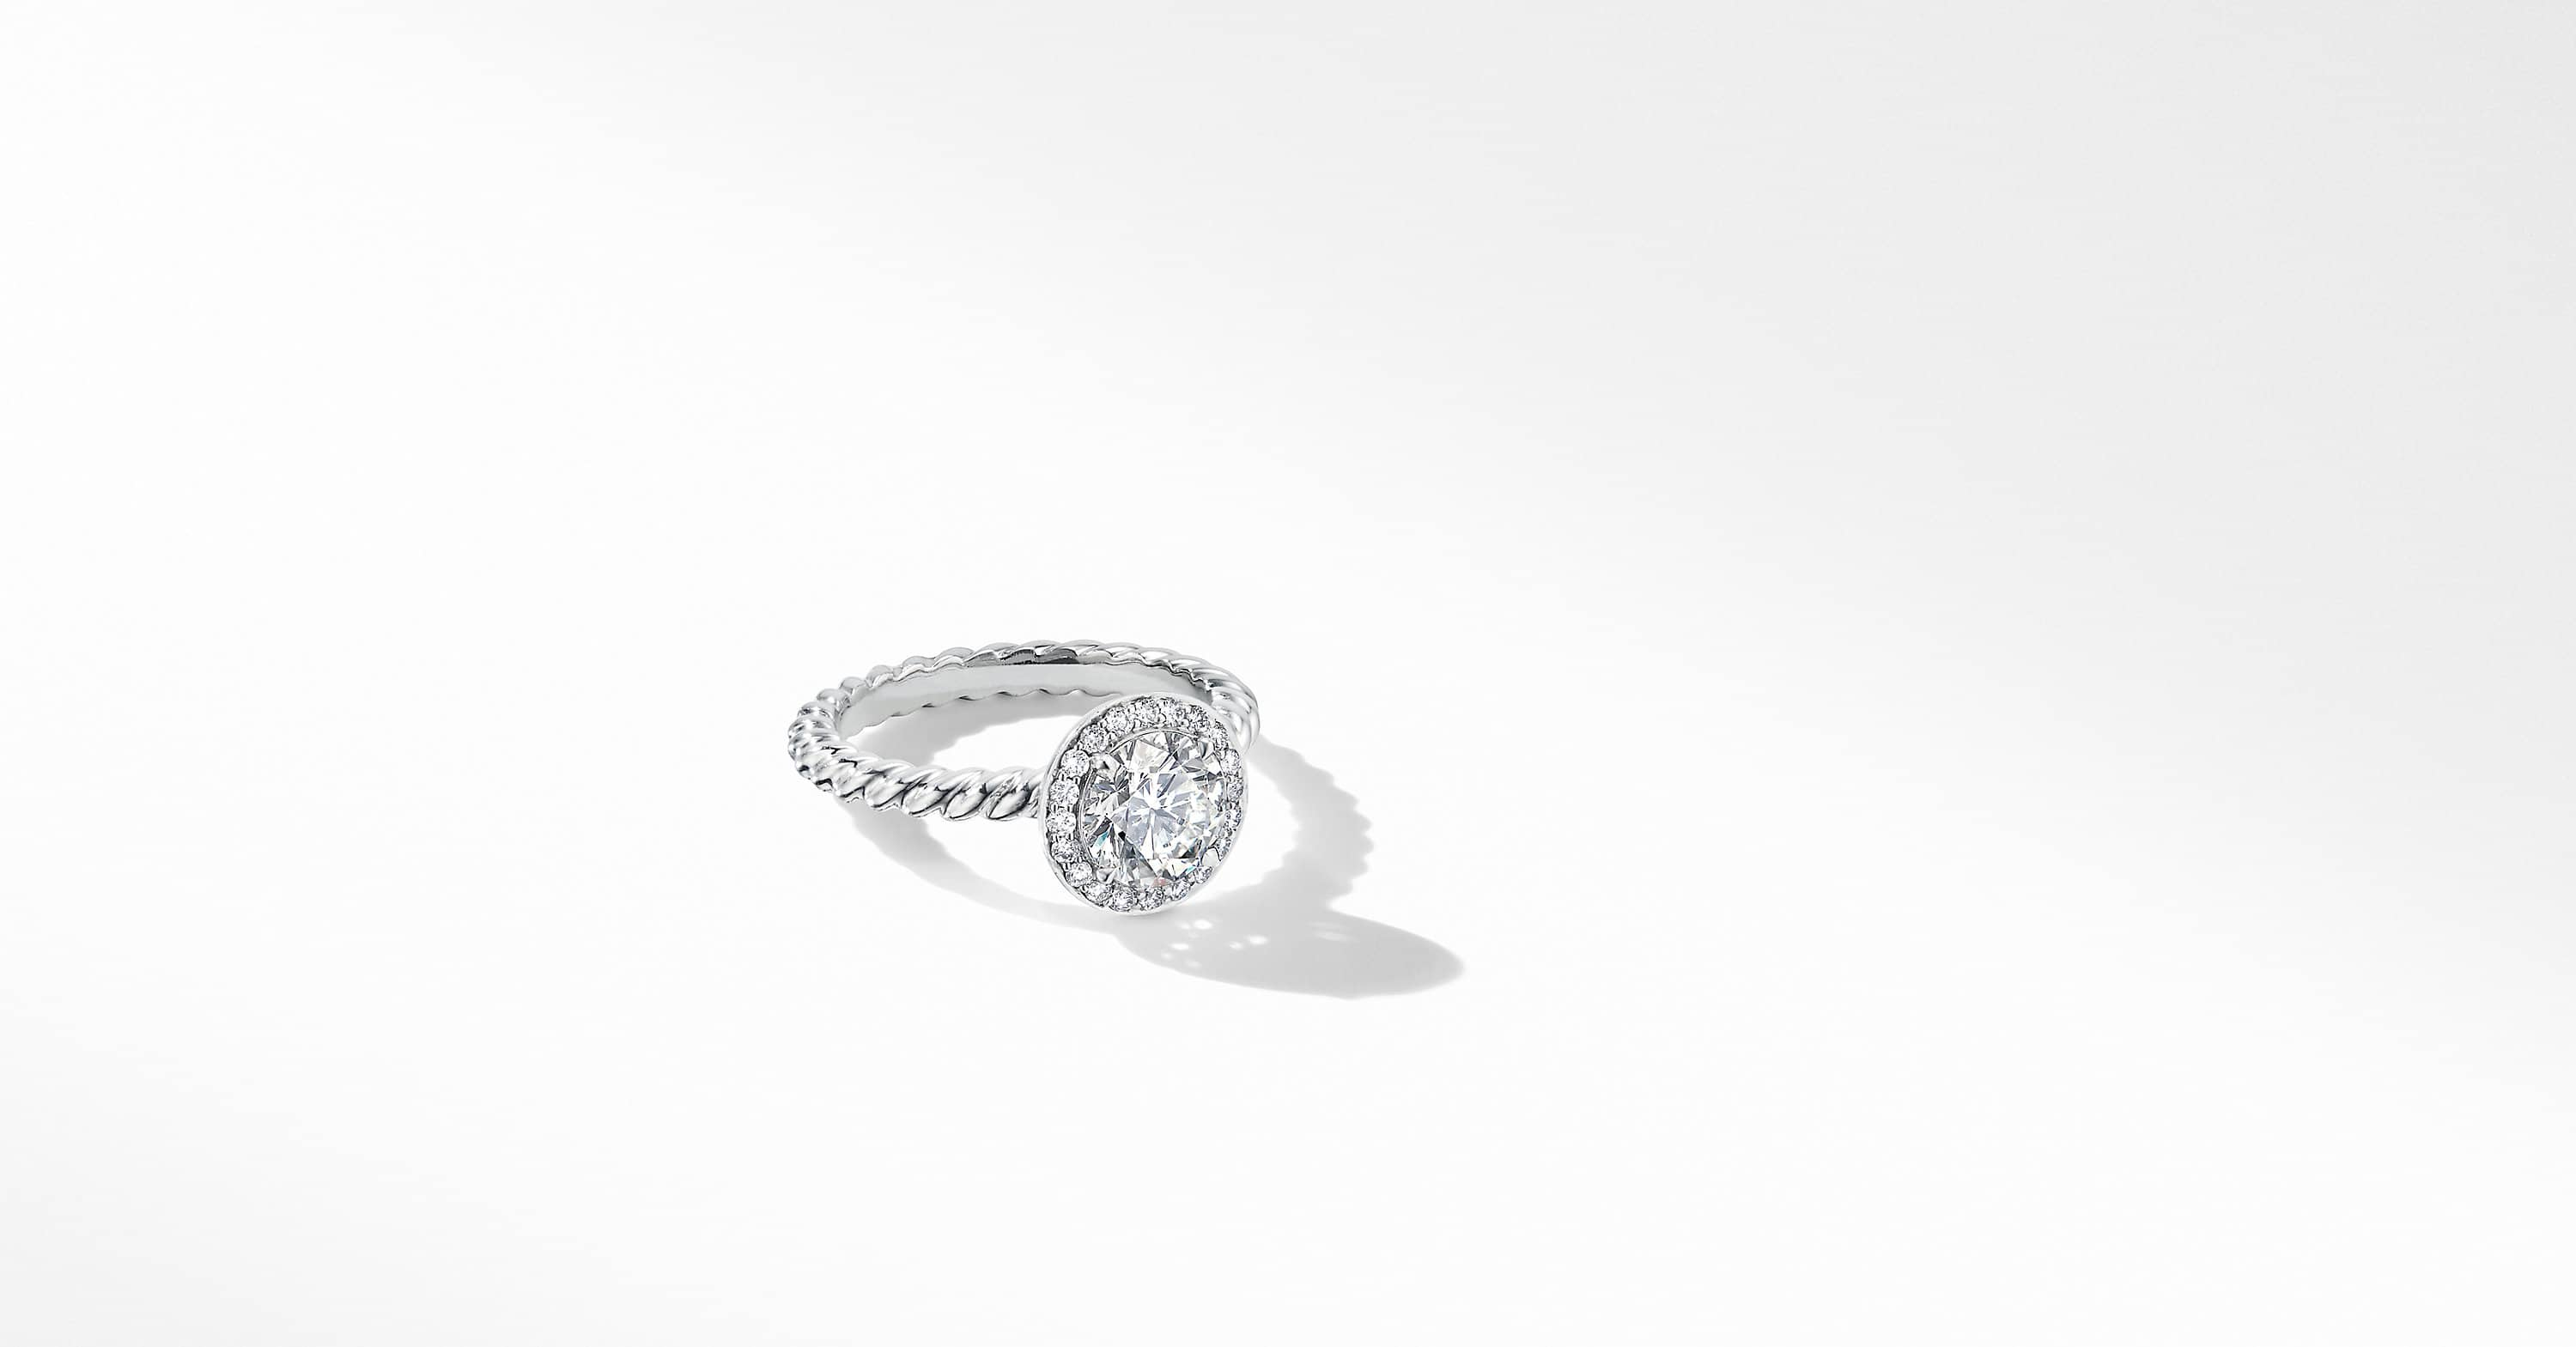 DY Capri Engagement Ring in Platinum, Round